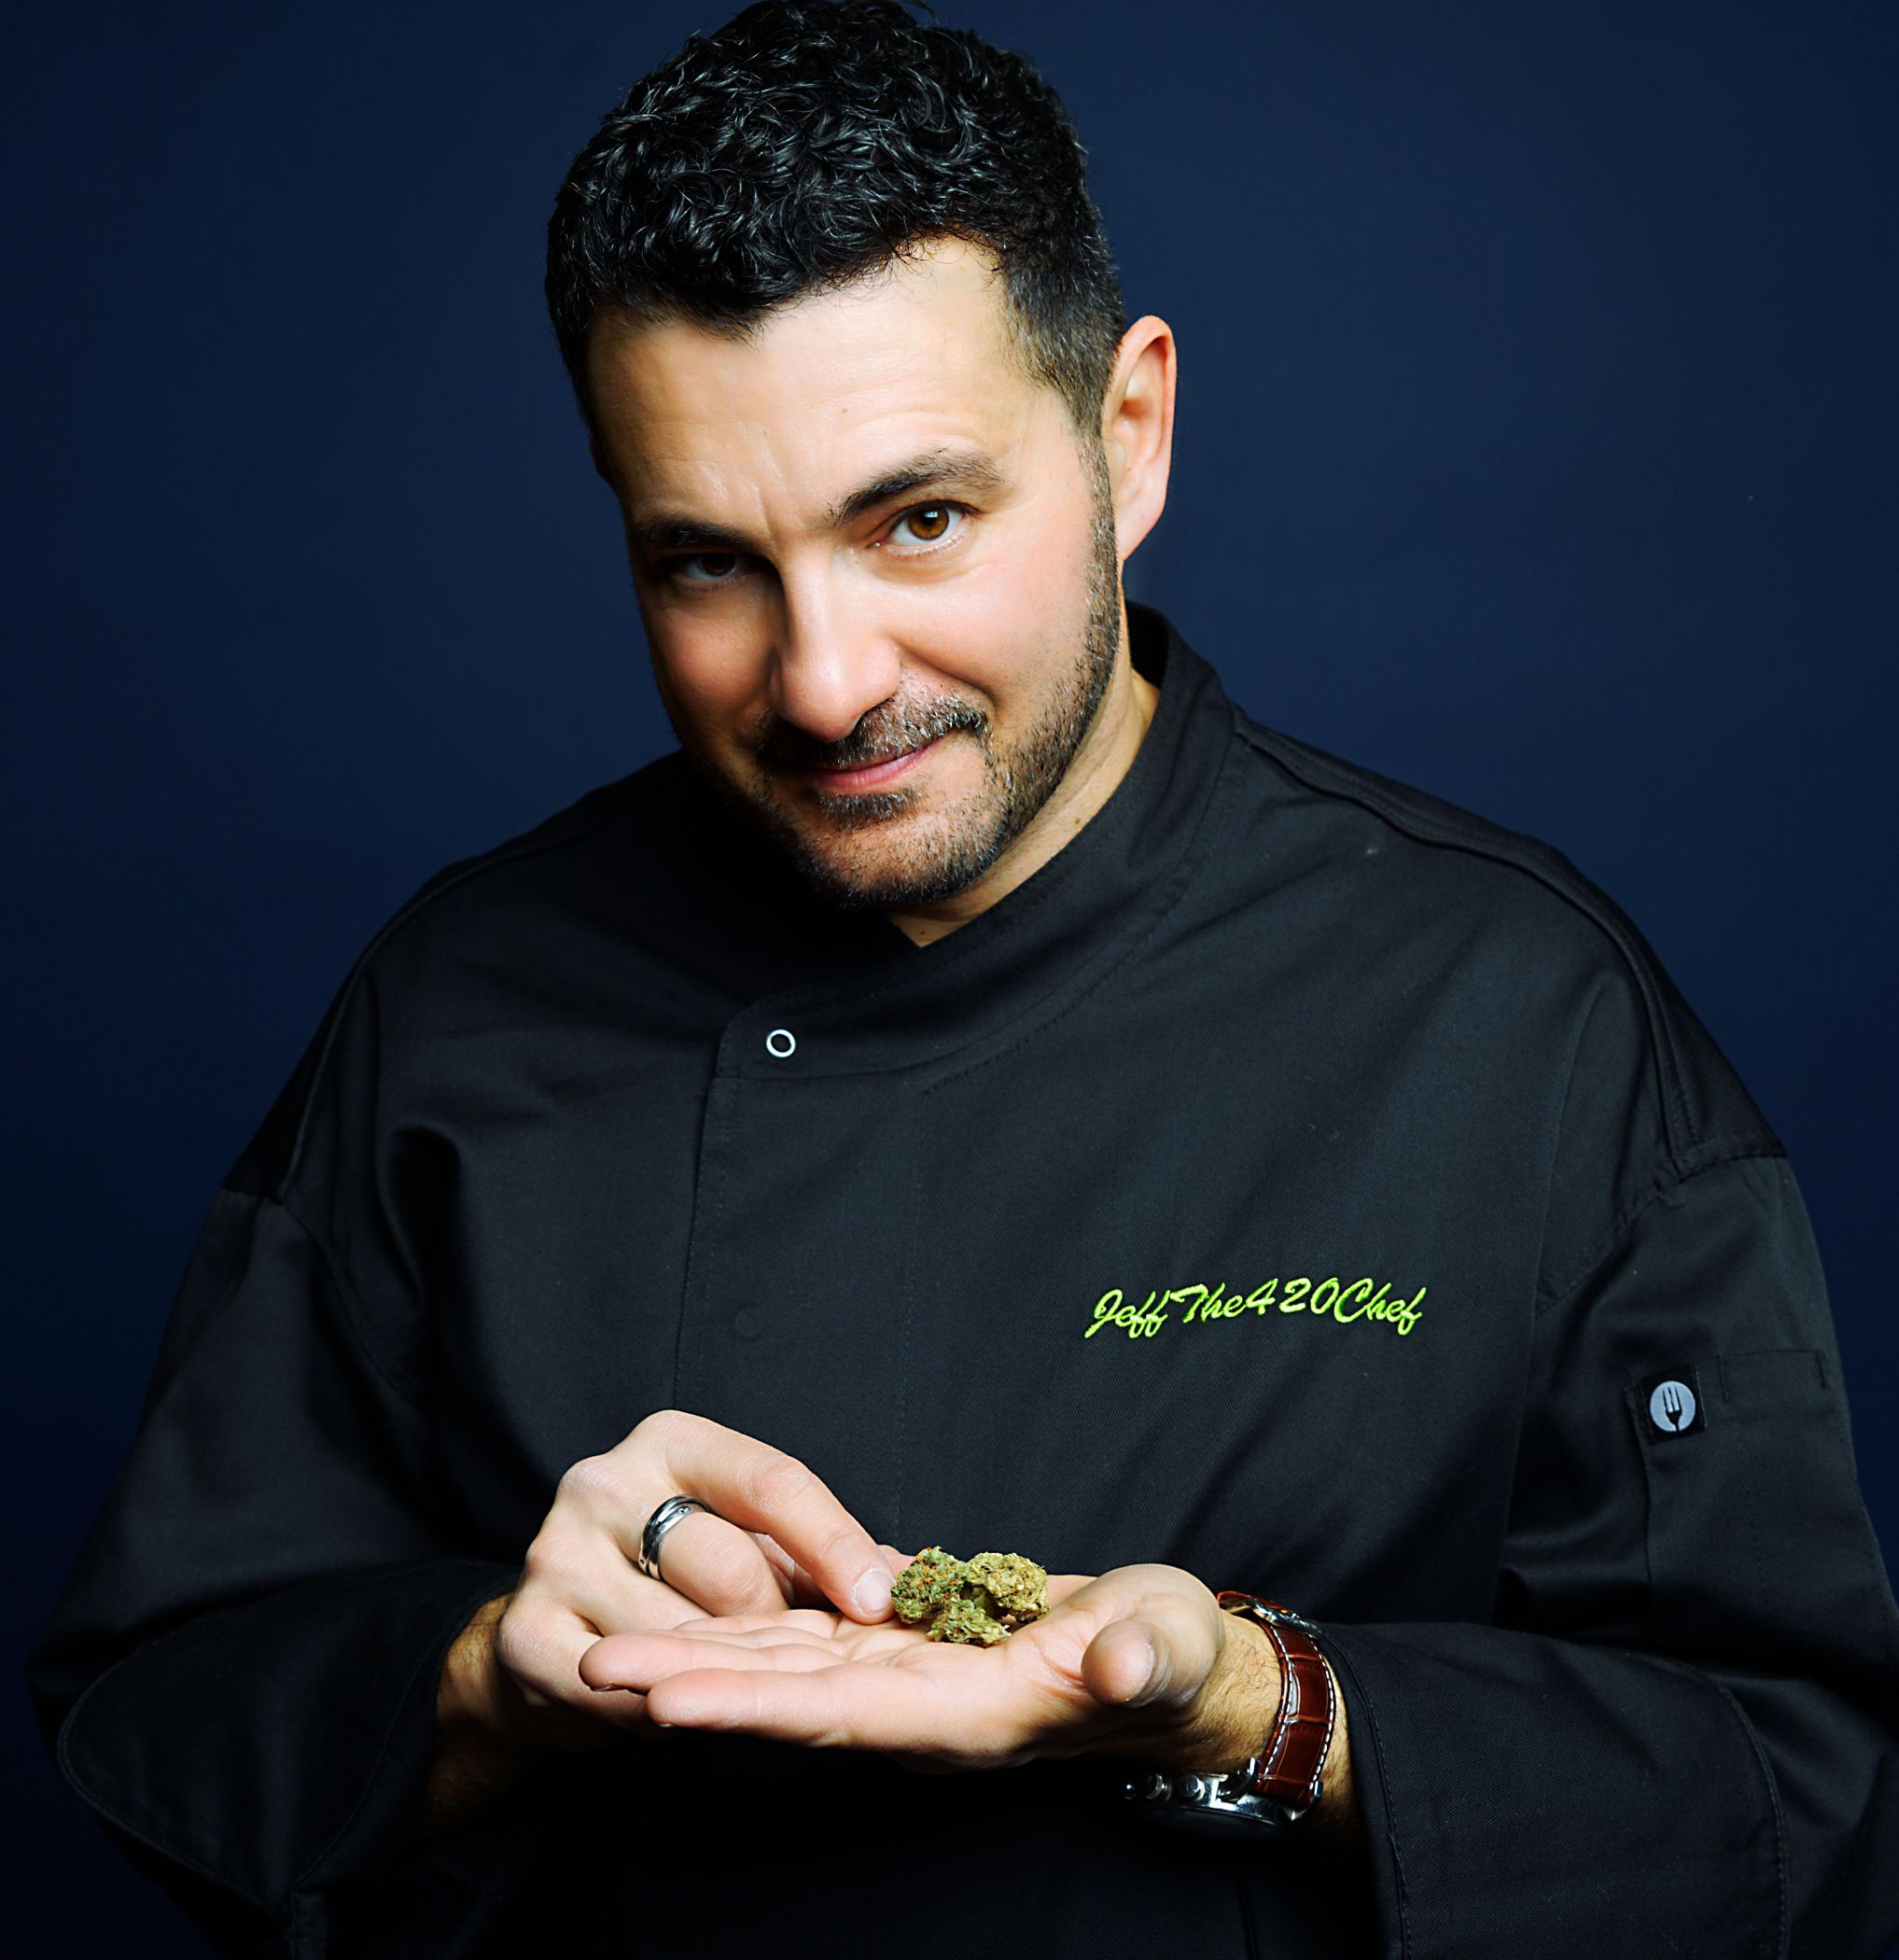 Jeff Danzer, aka, Jeff the 420 Chef, is a self-taught culinarian who created a unique process of preparing cannabis for cooking. Courtesy of Joseph Viles